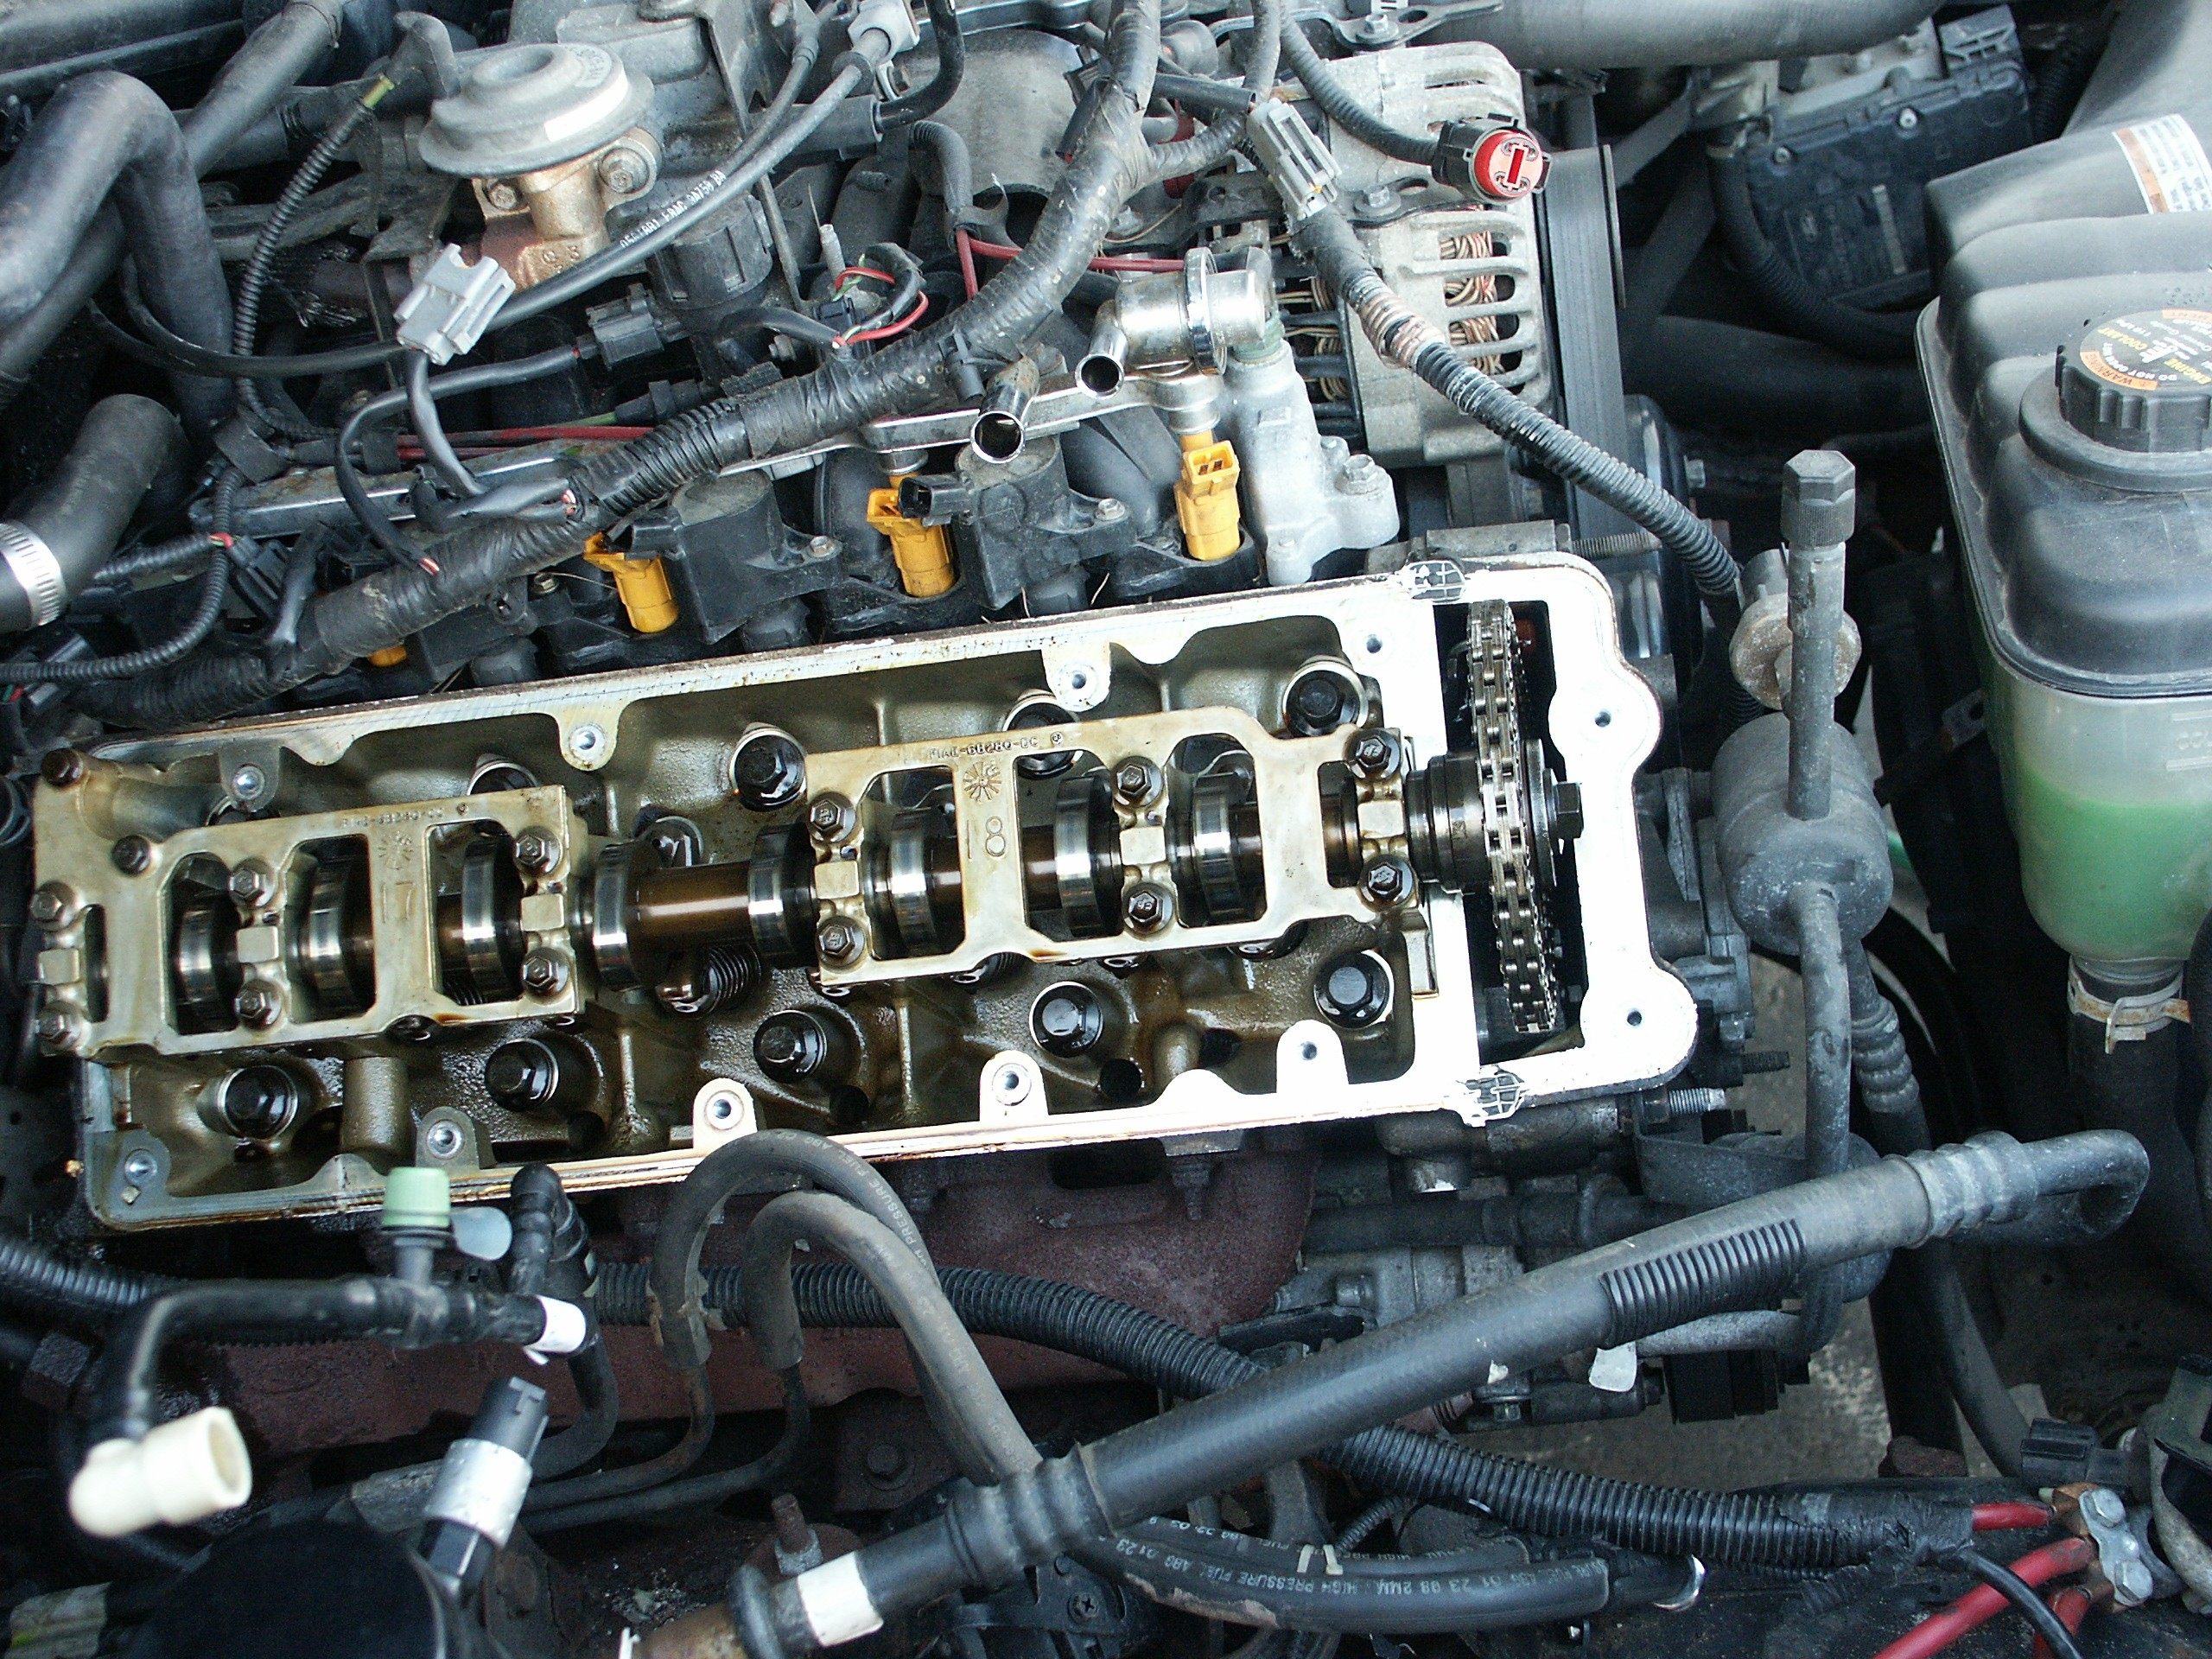 1998 Lincoln town Car Engine Diagram ford Crown Victoria Passenger Side Valve Cover Replacement Of 1998 Lincoln town Car Engine Diagram